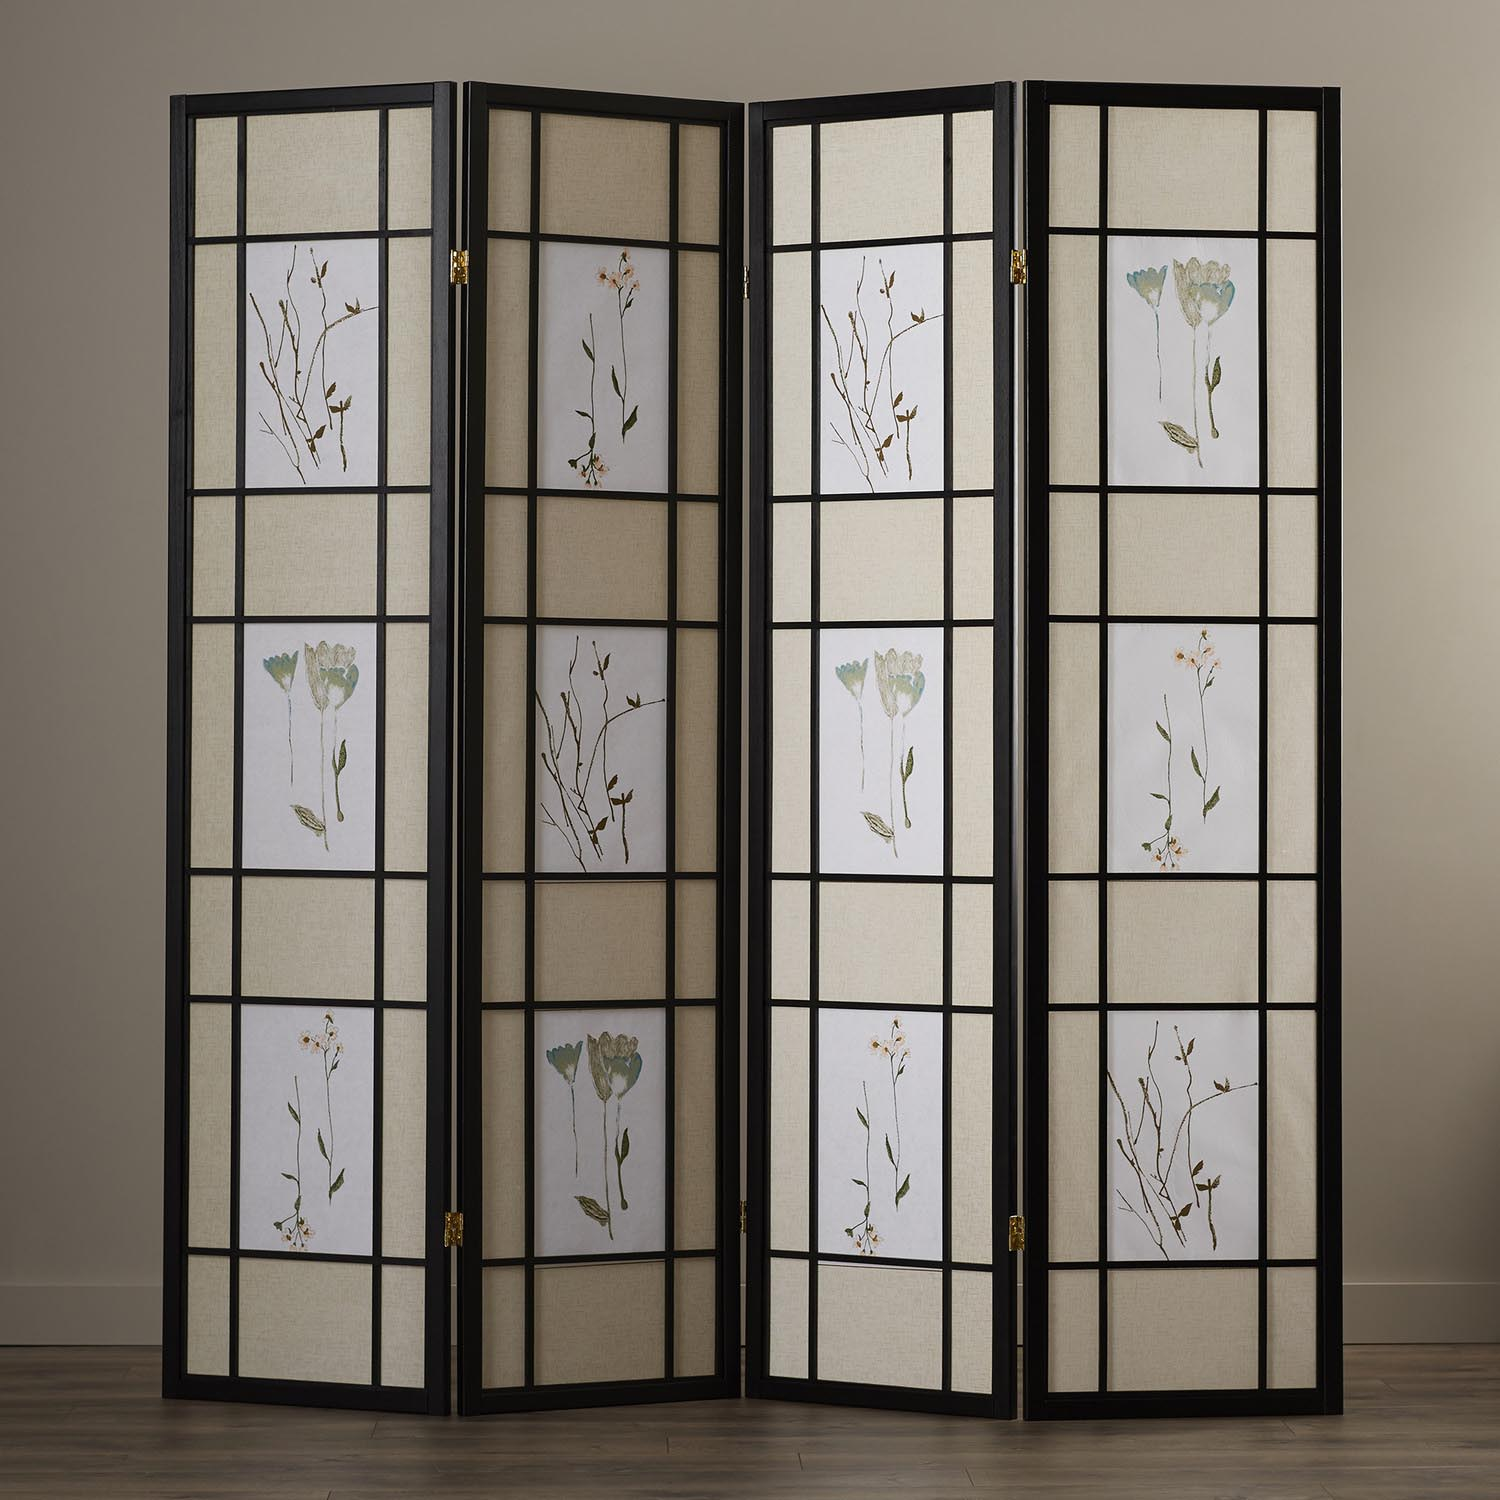 Hanging Fabric Room Dividers